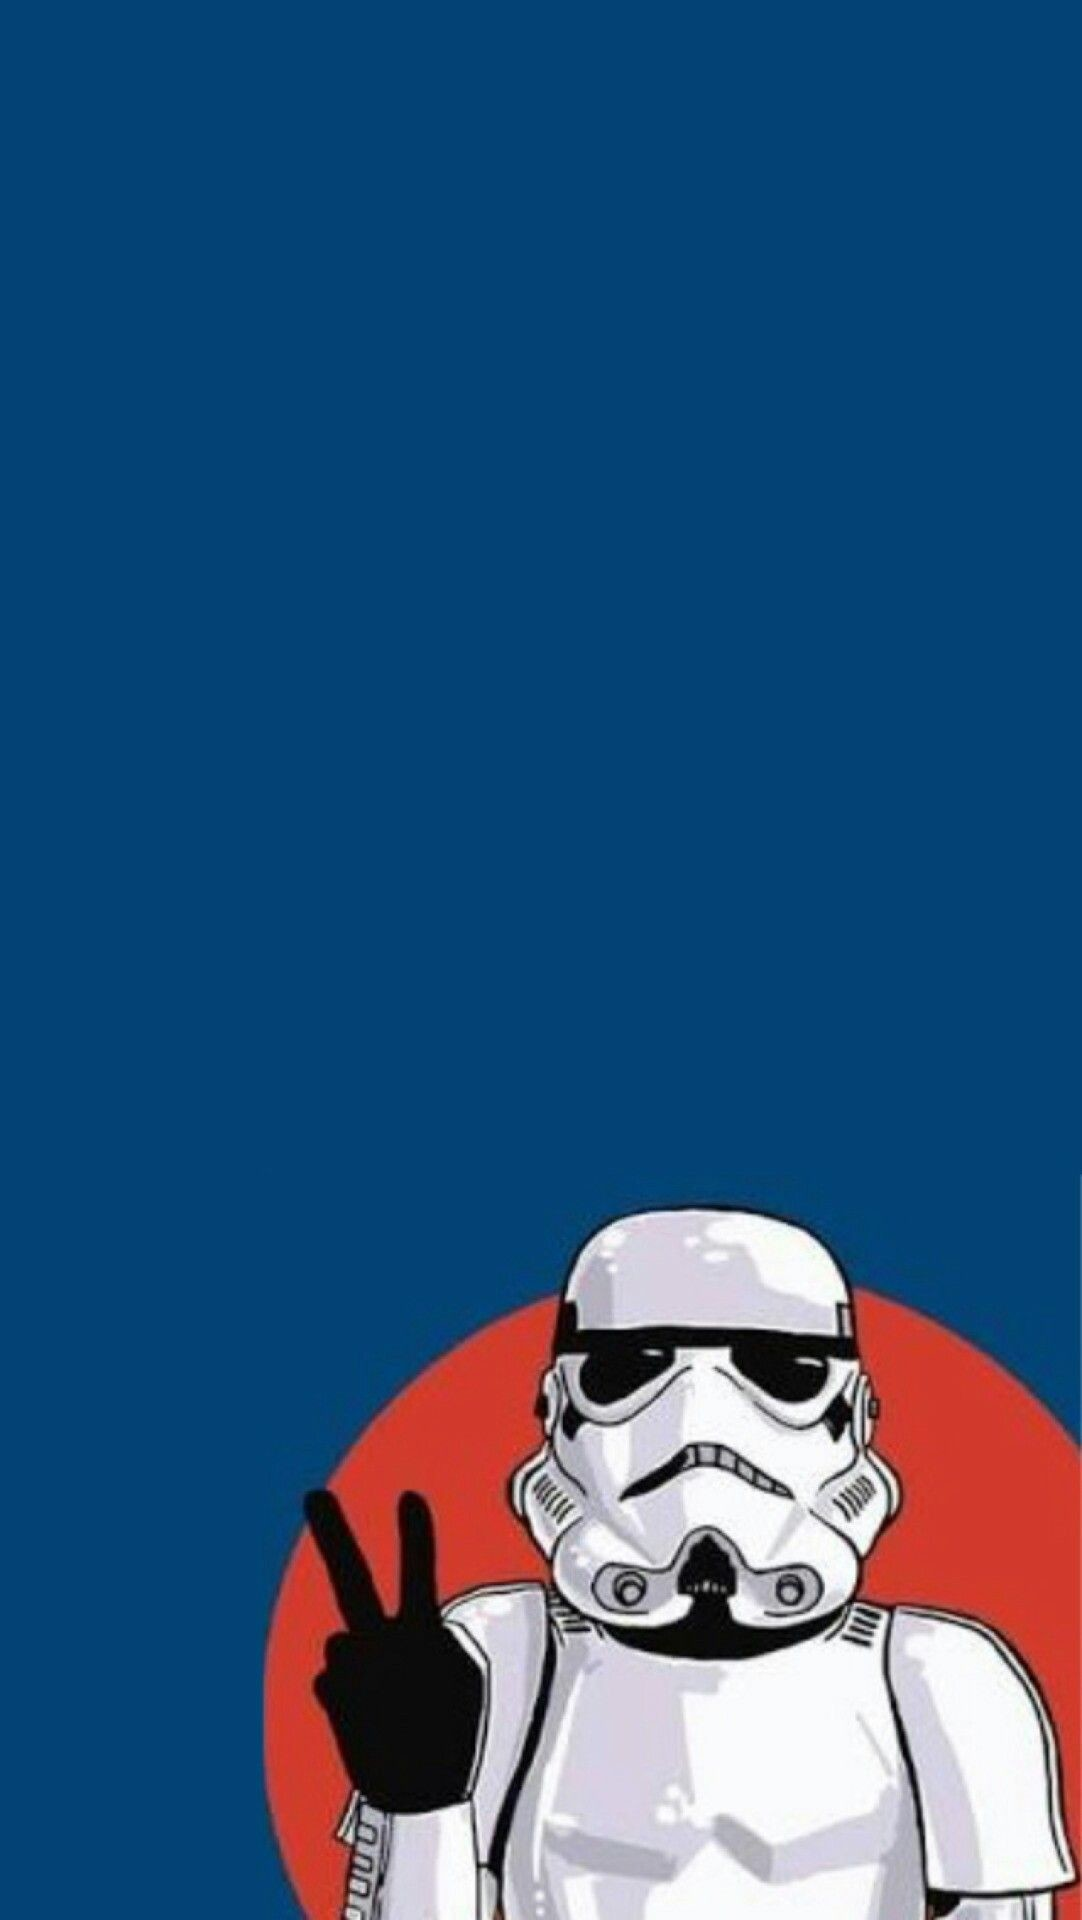 Star Wars Lockscreen Data Src Star Wars Lock Screen Star Wars Iphone X 2525010 Hd Wallpaper Backgrounds Download